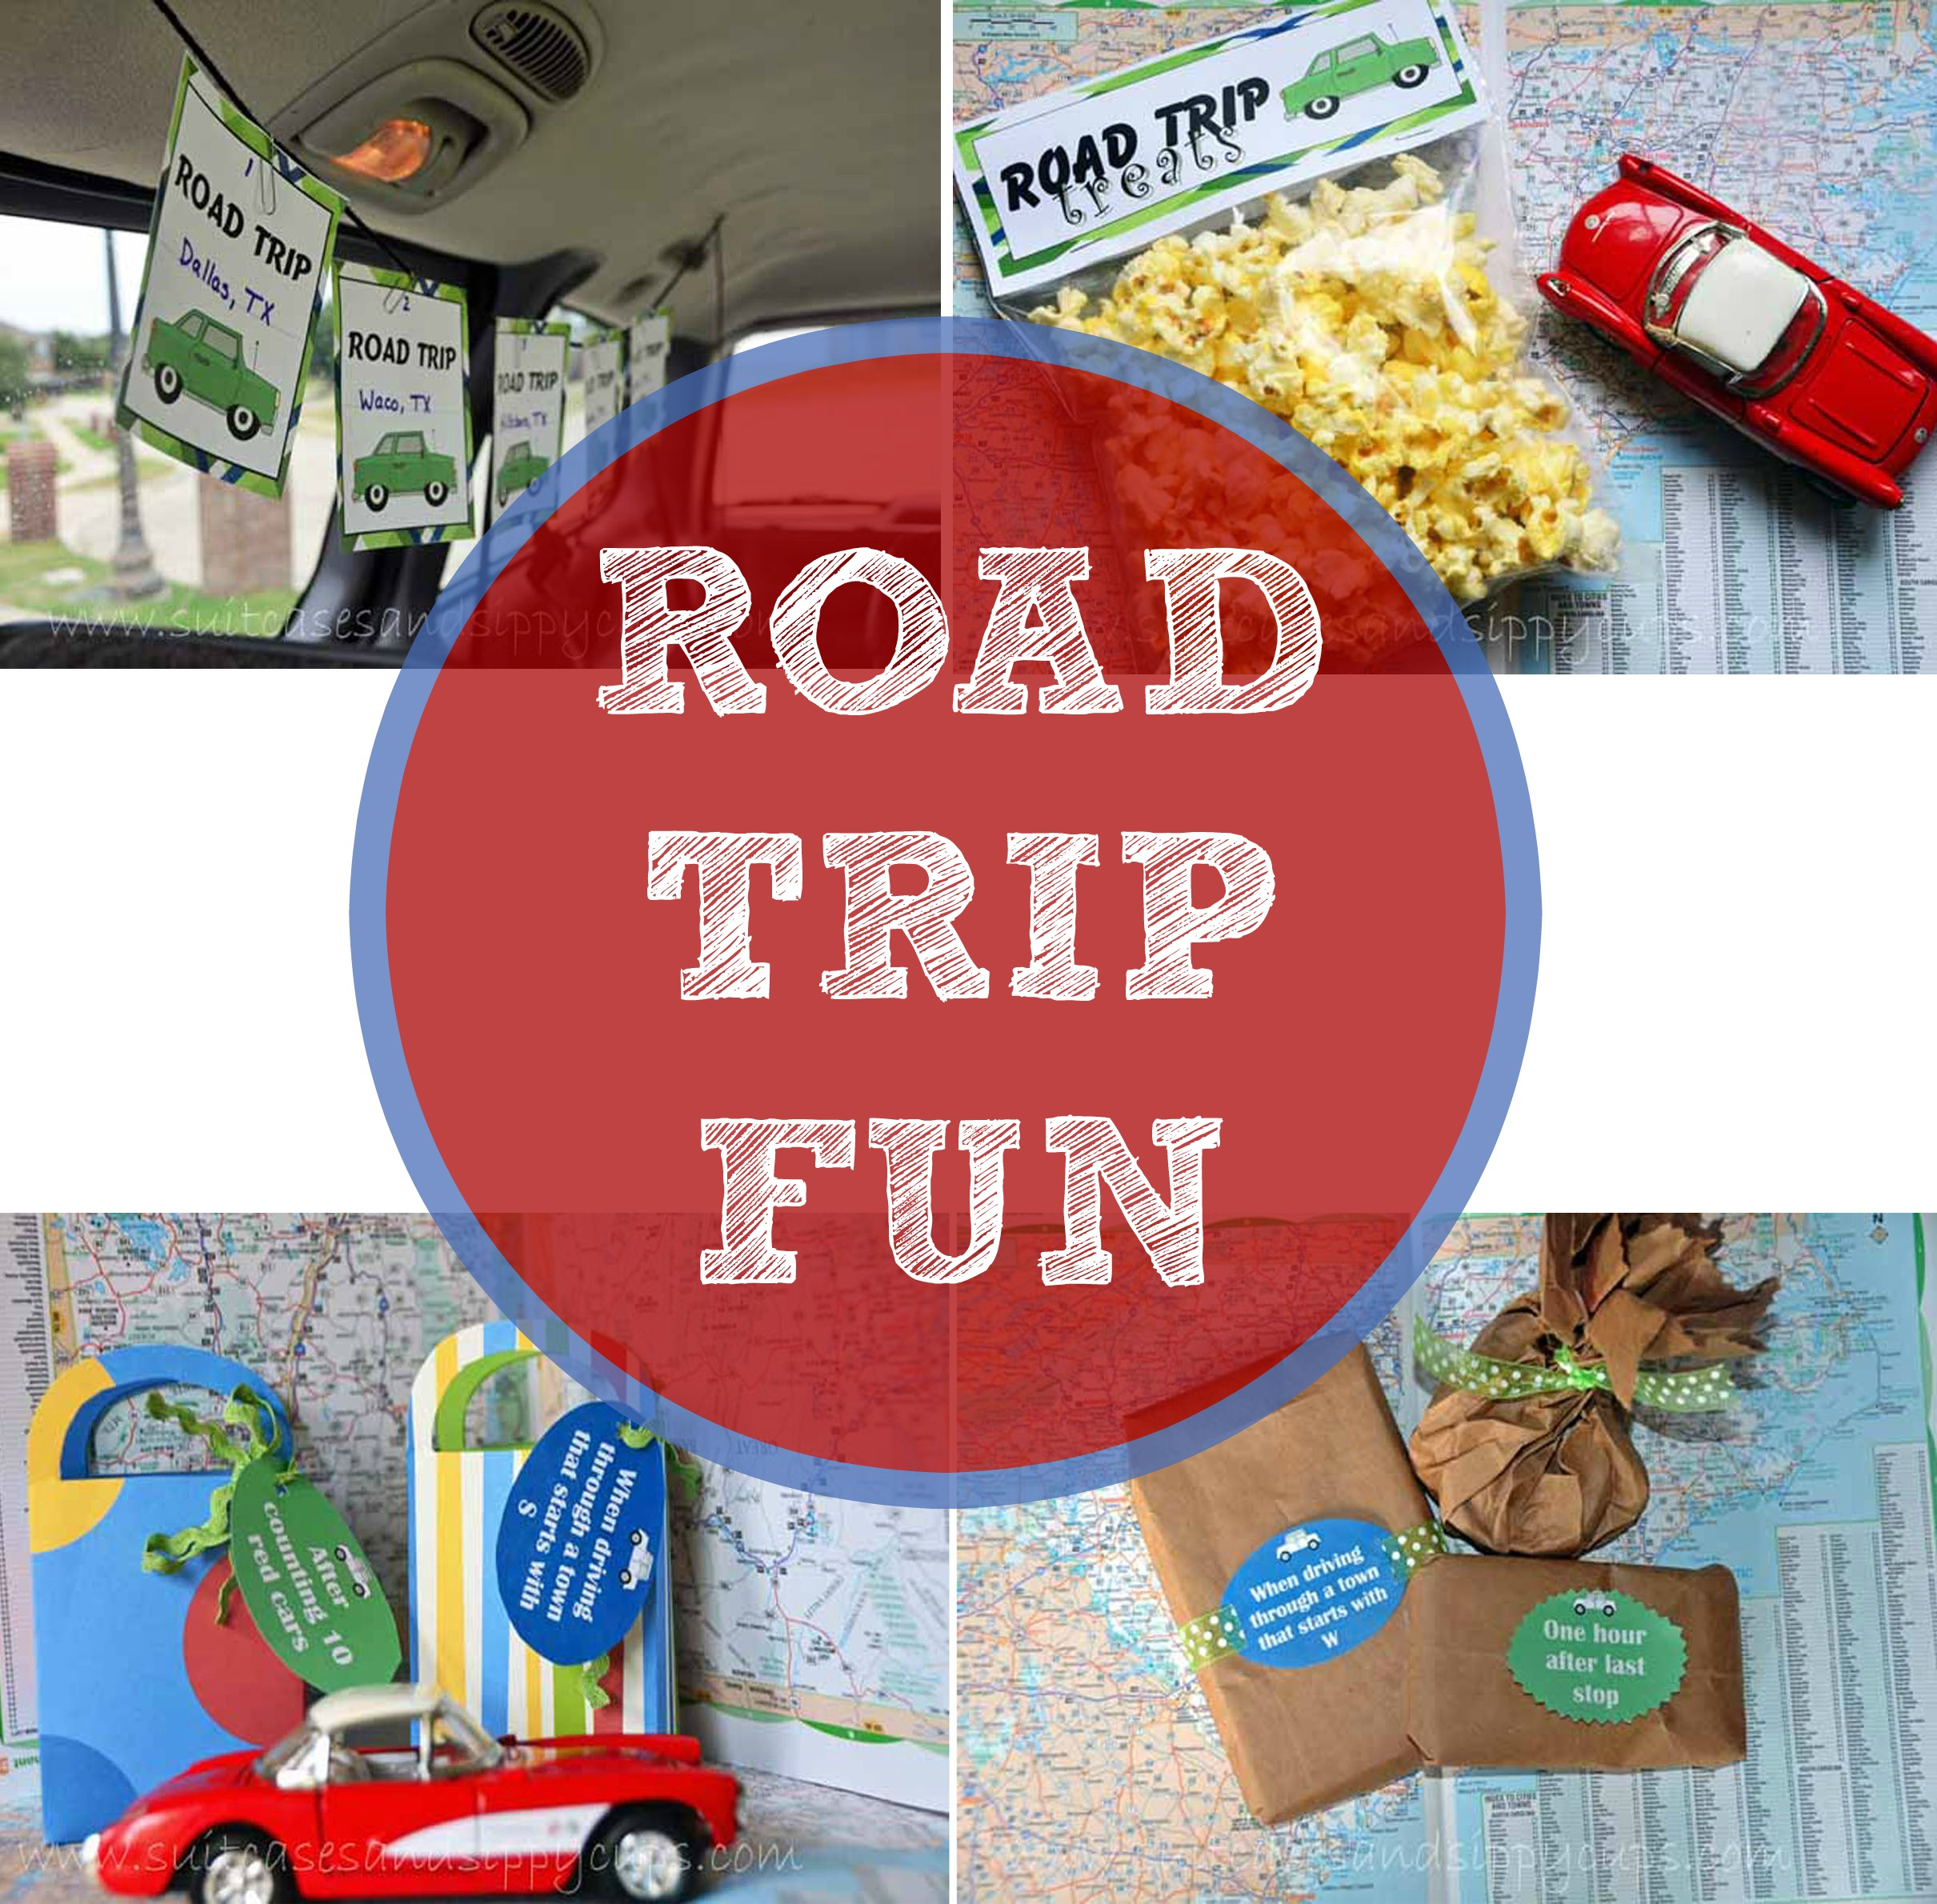 5 Best Northeast Road Trips Road Trip Ideas Travelingmom >> Tips For Making Road Trips More Fun Travel Tips Tuesday